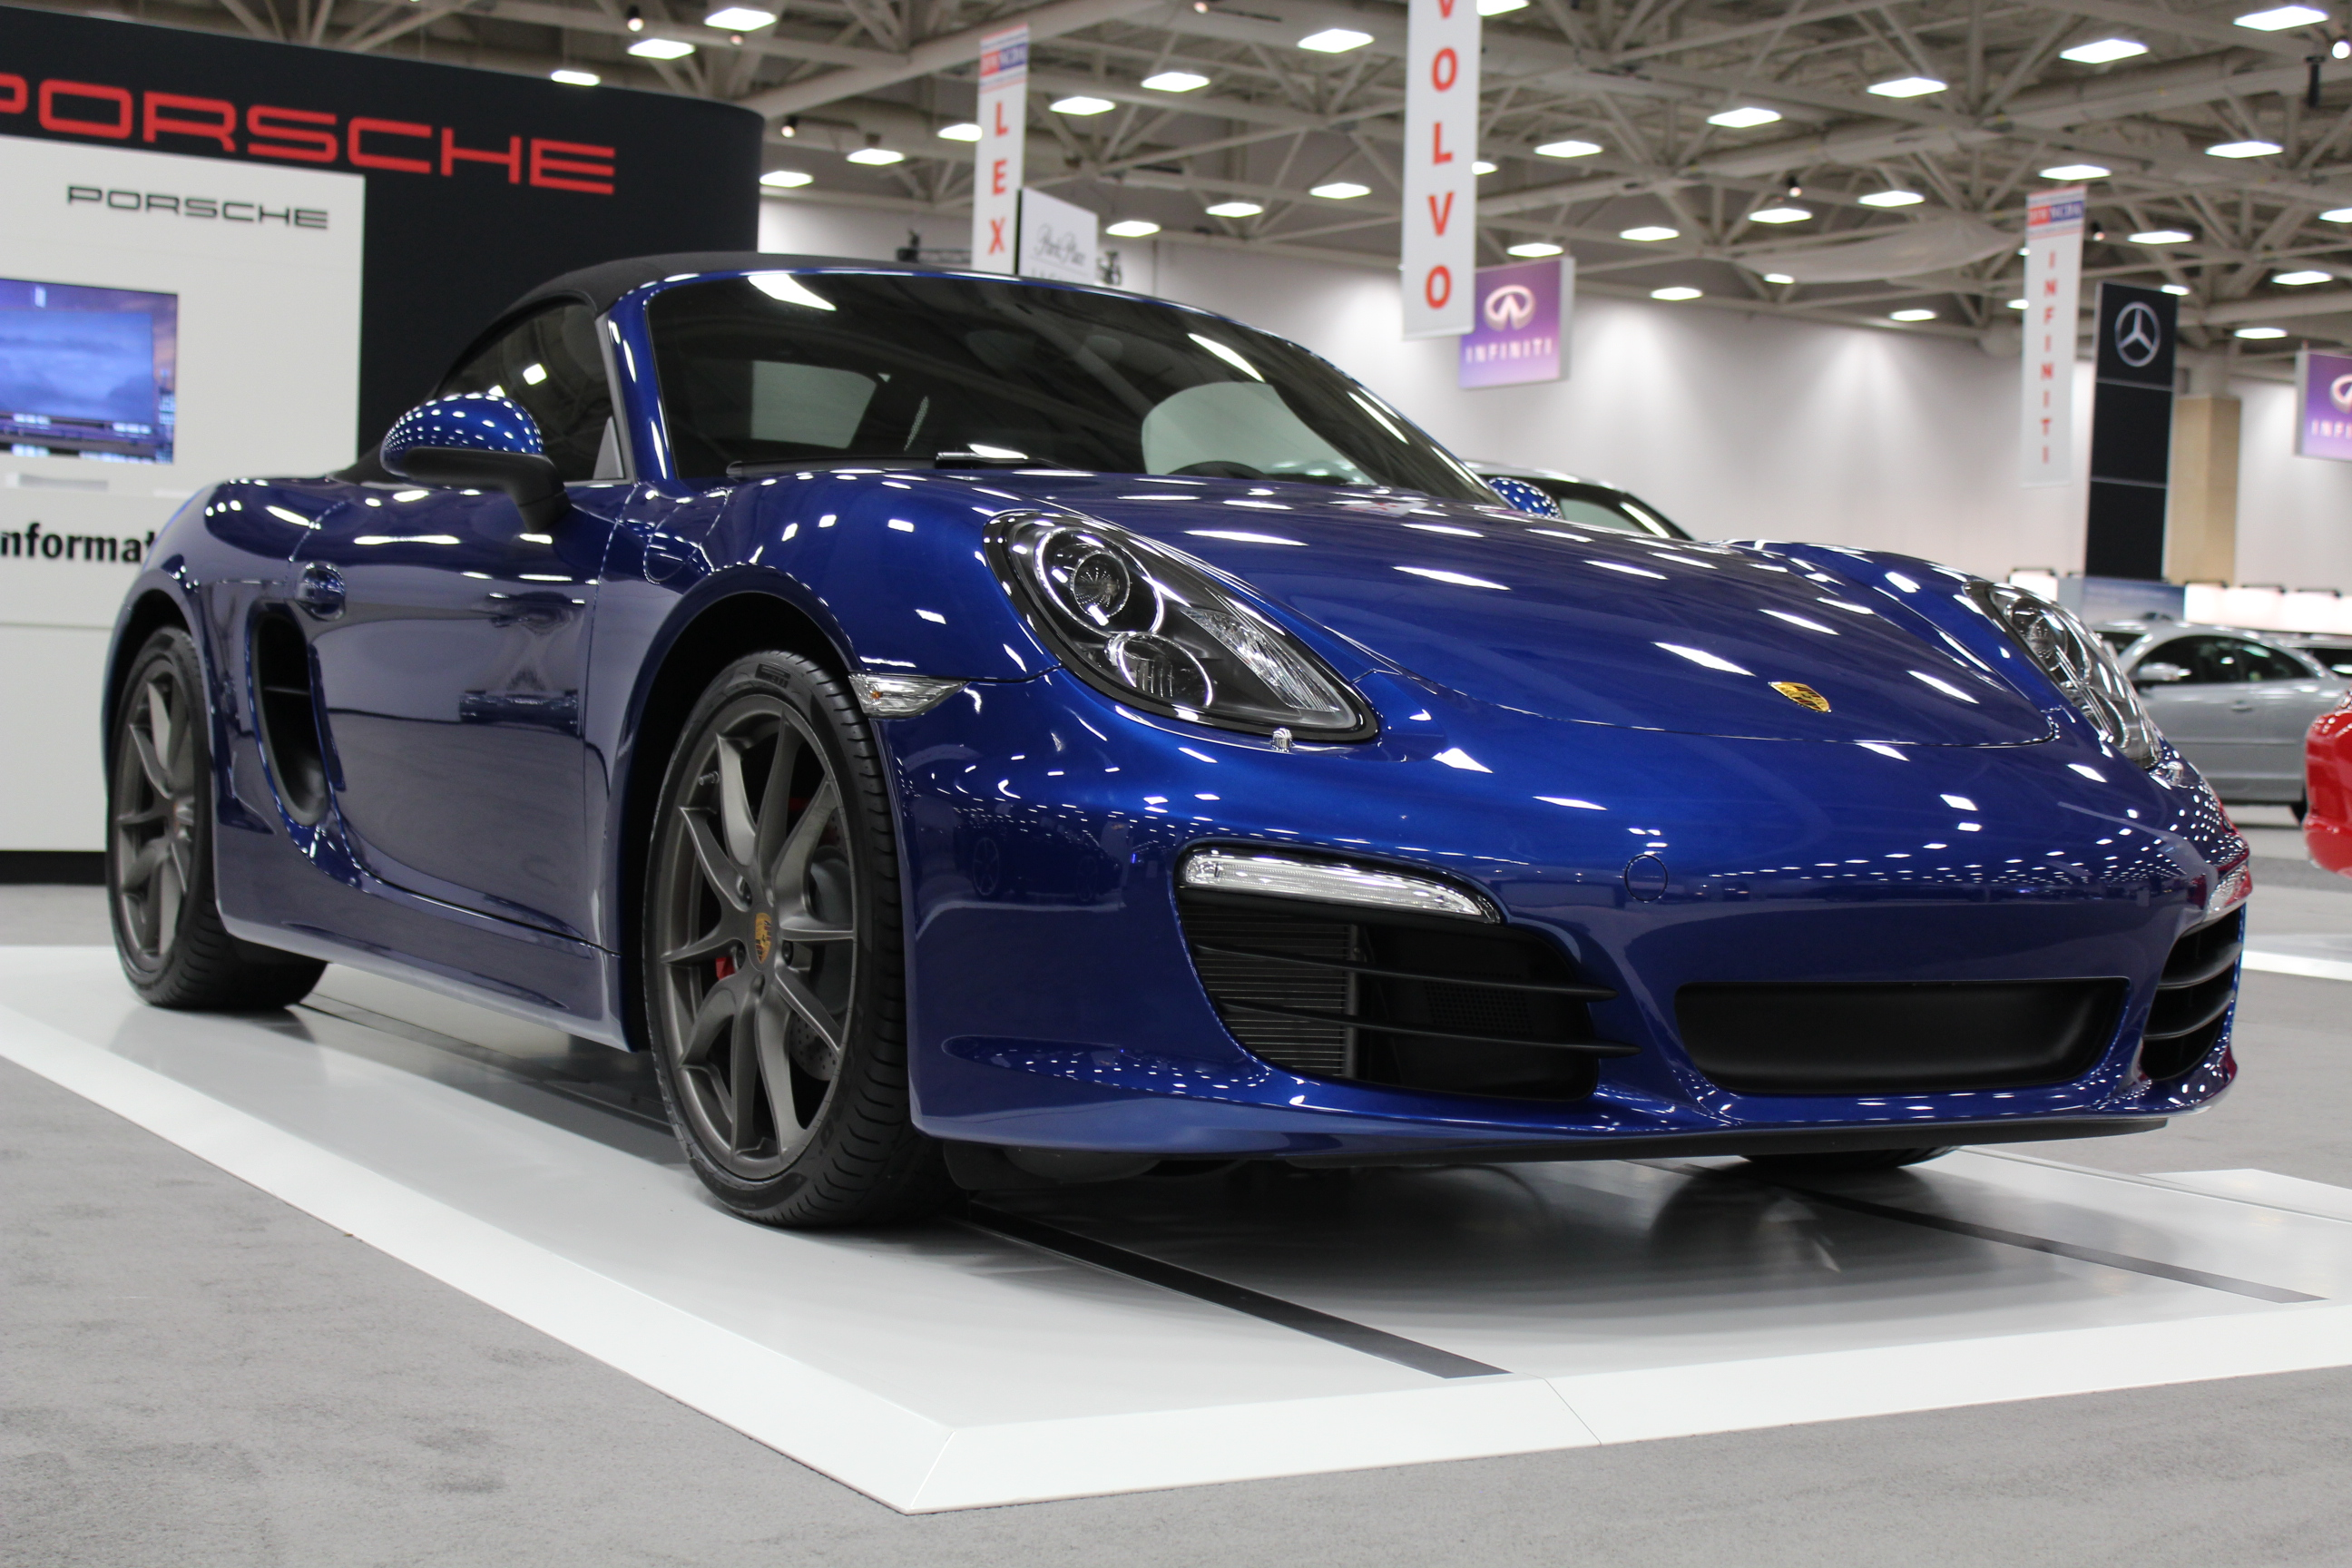 Dallas Auto Show >> 2013 Porsche Boxster On Display At The Dallas Auto Show Txgarage